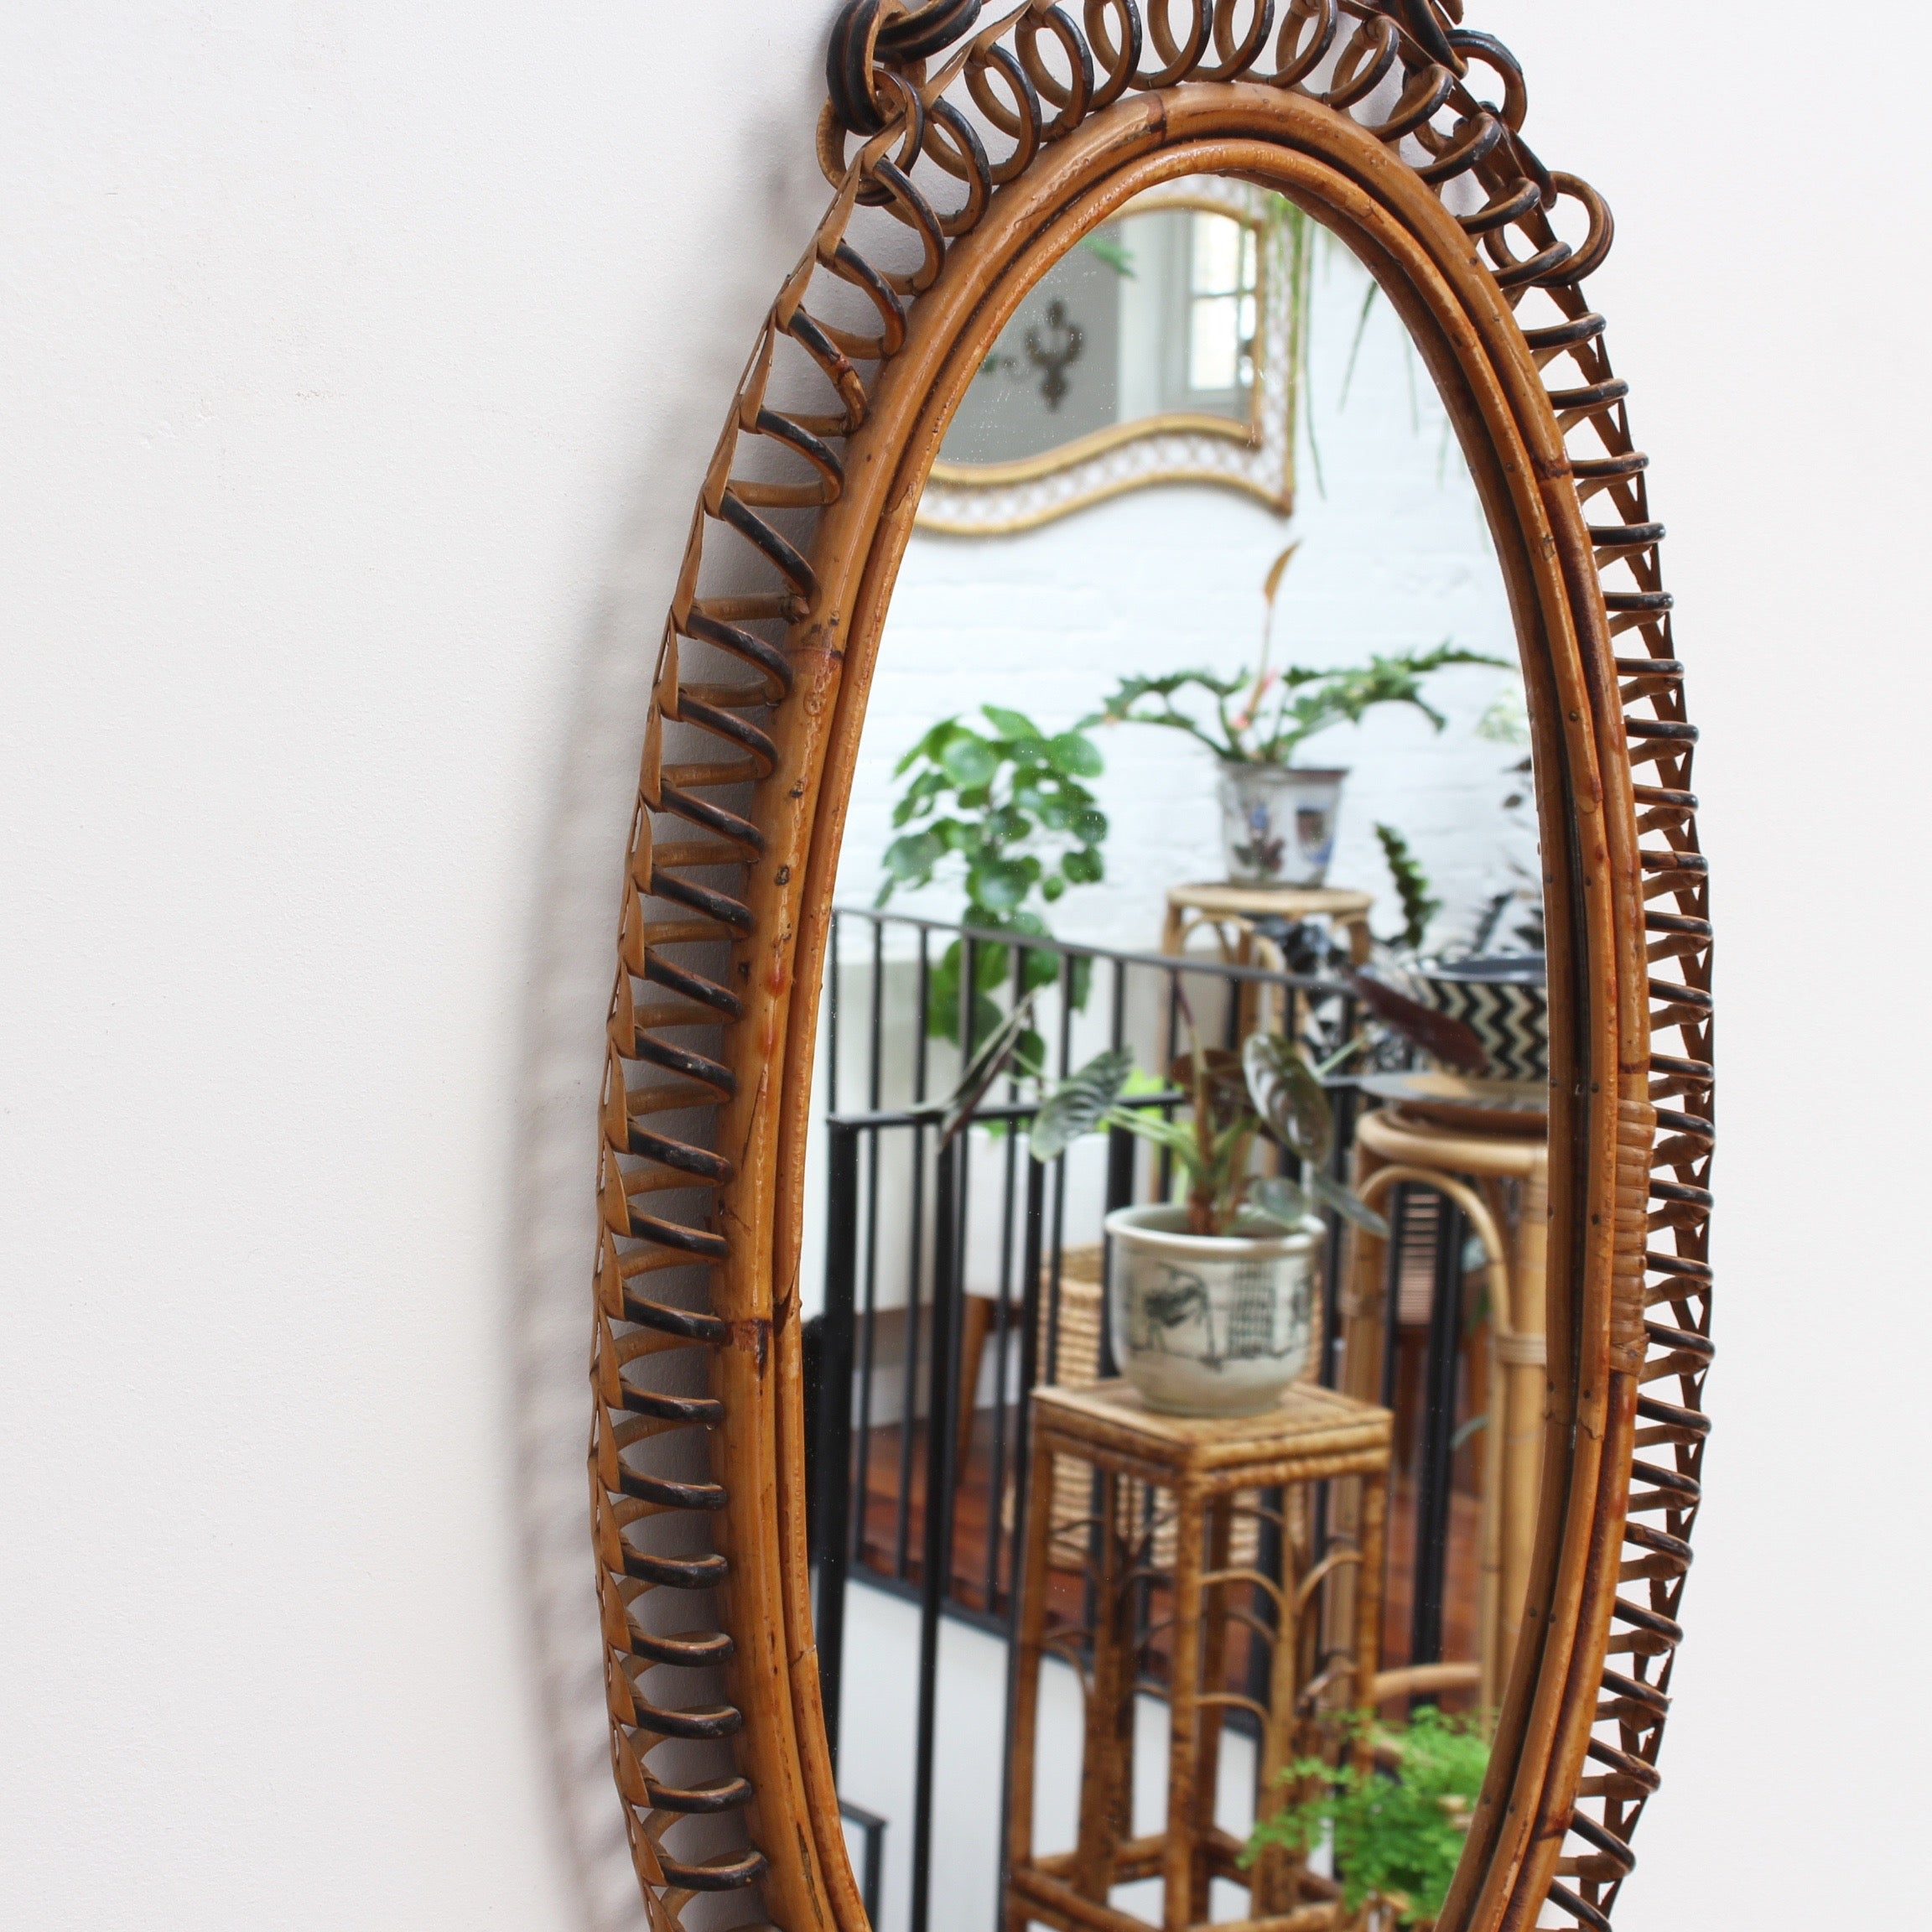 Italian Oval-Shaped Rattan Wall Mirror with Hanging Chain (circa 1960s)